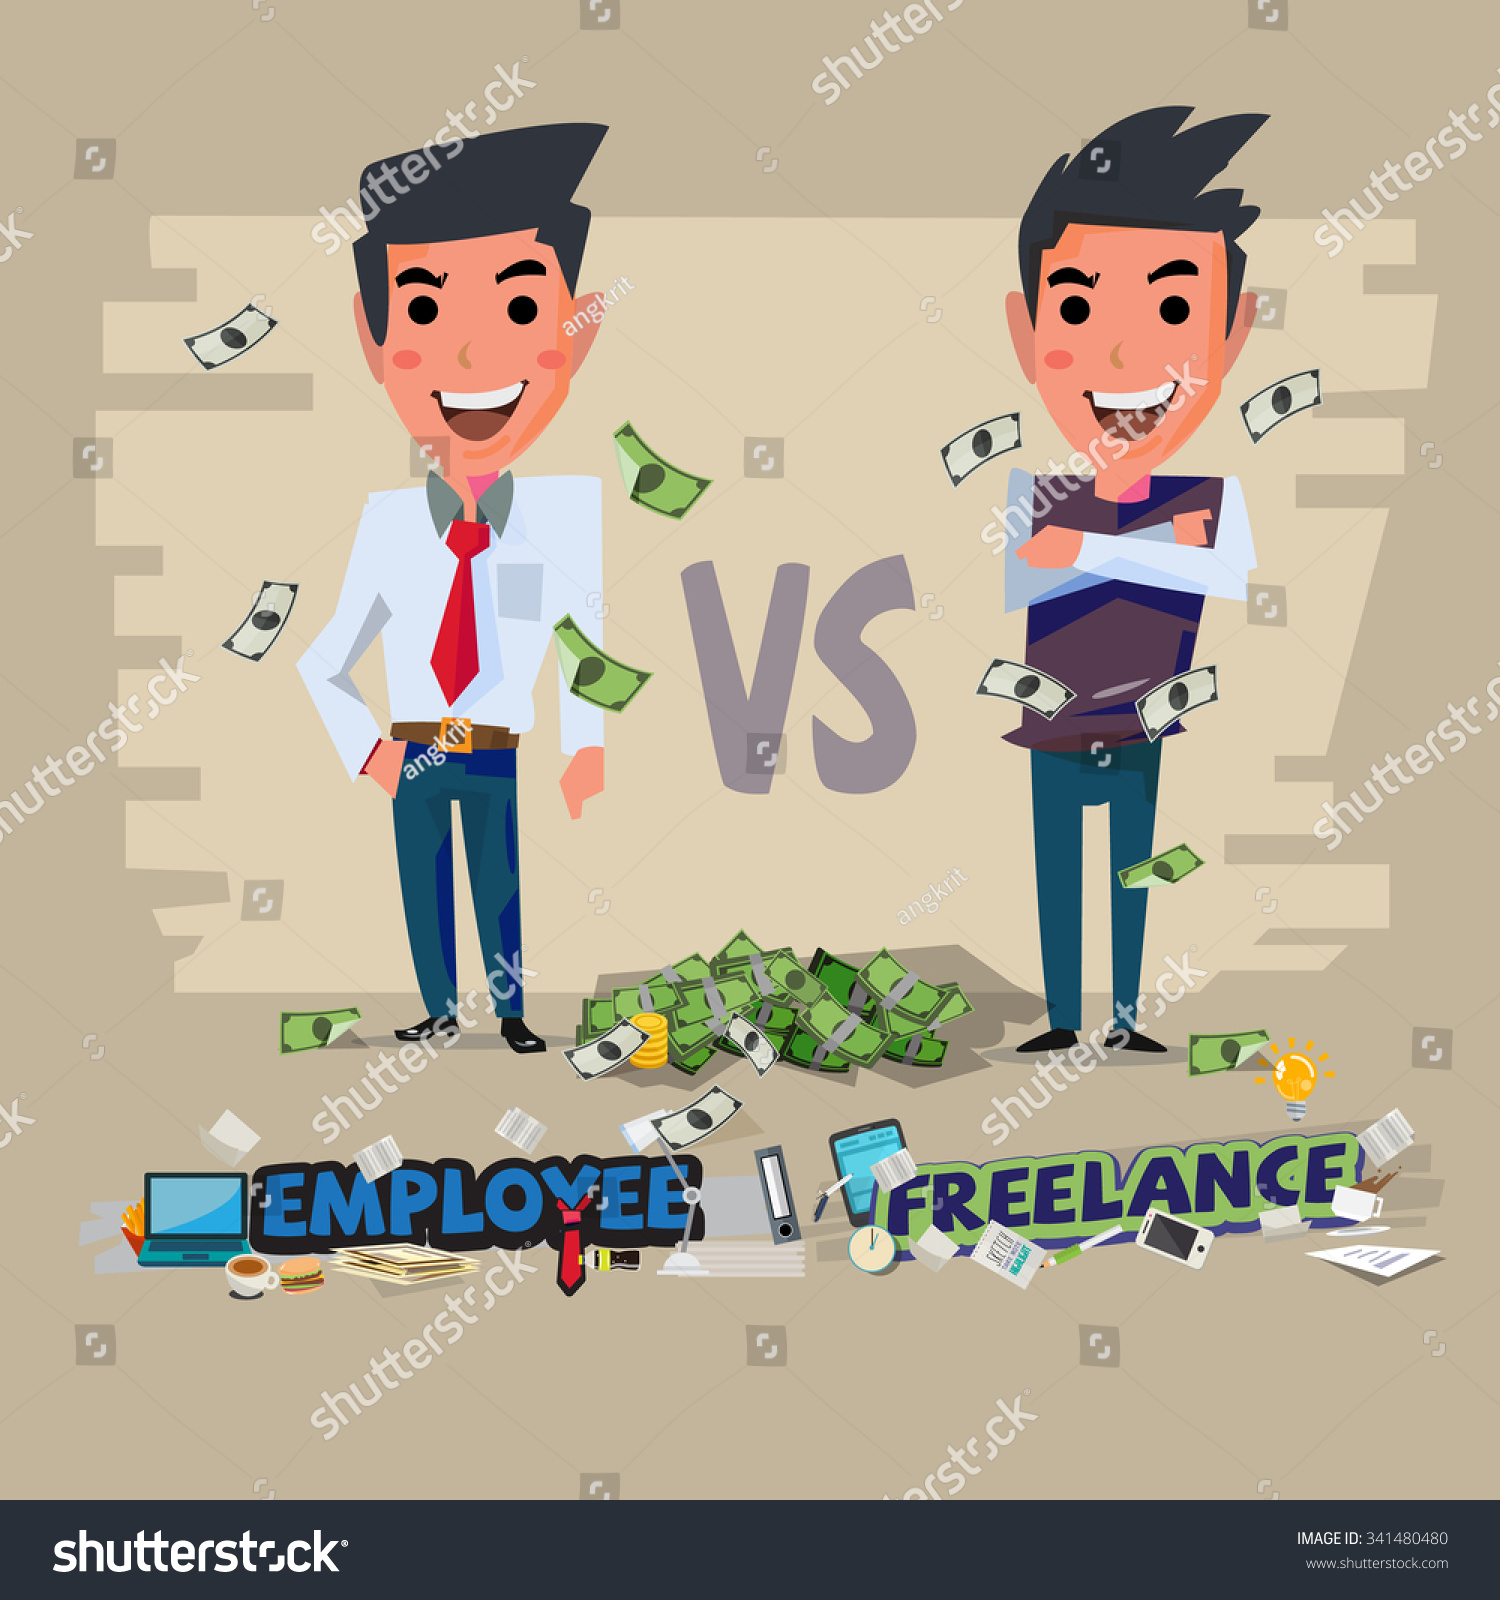 Illustrator Character Design Freelance : Employee freelance character design freelancing vs stock